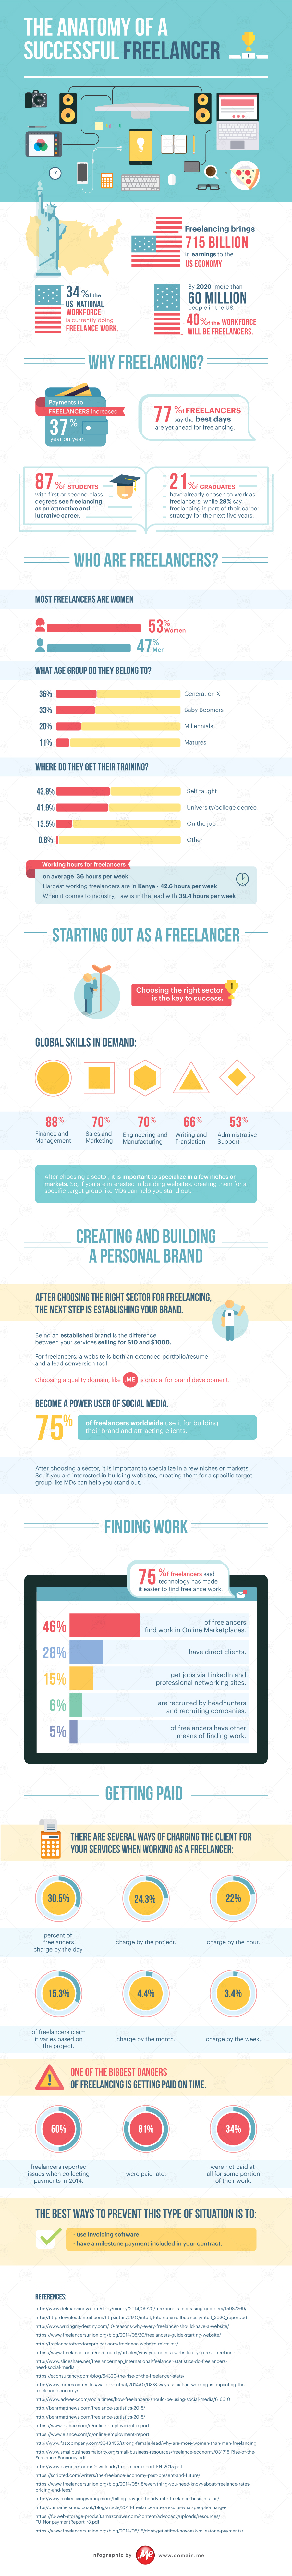 Infographic The Anatomy Of A Successful Freelancer Domain Blog